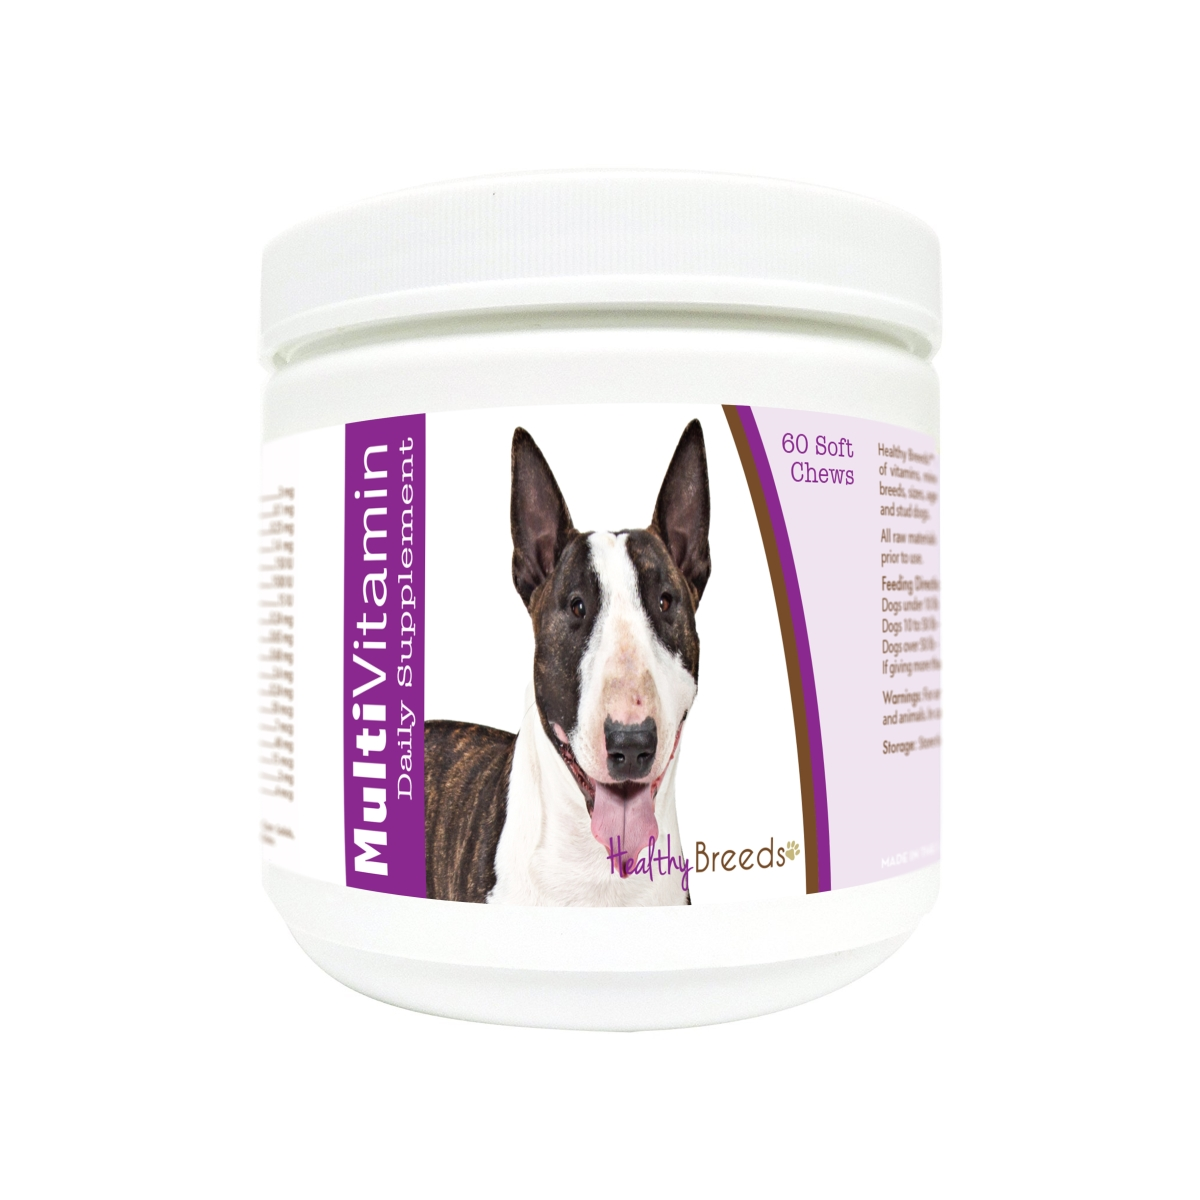 Healthy Breeds 840235176480 Miniature Bull Terrier Multi-Vitamin Soft Chews - 60 Count